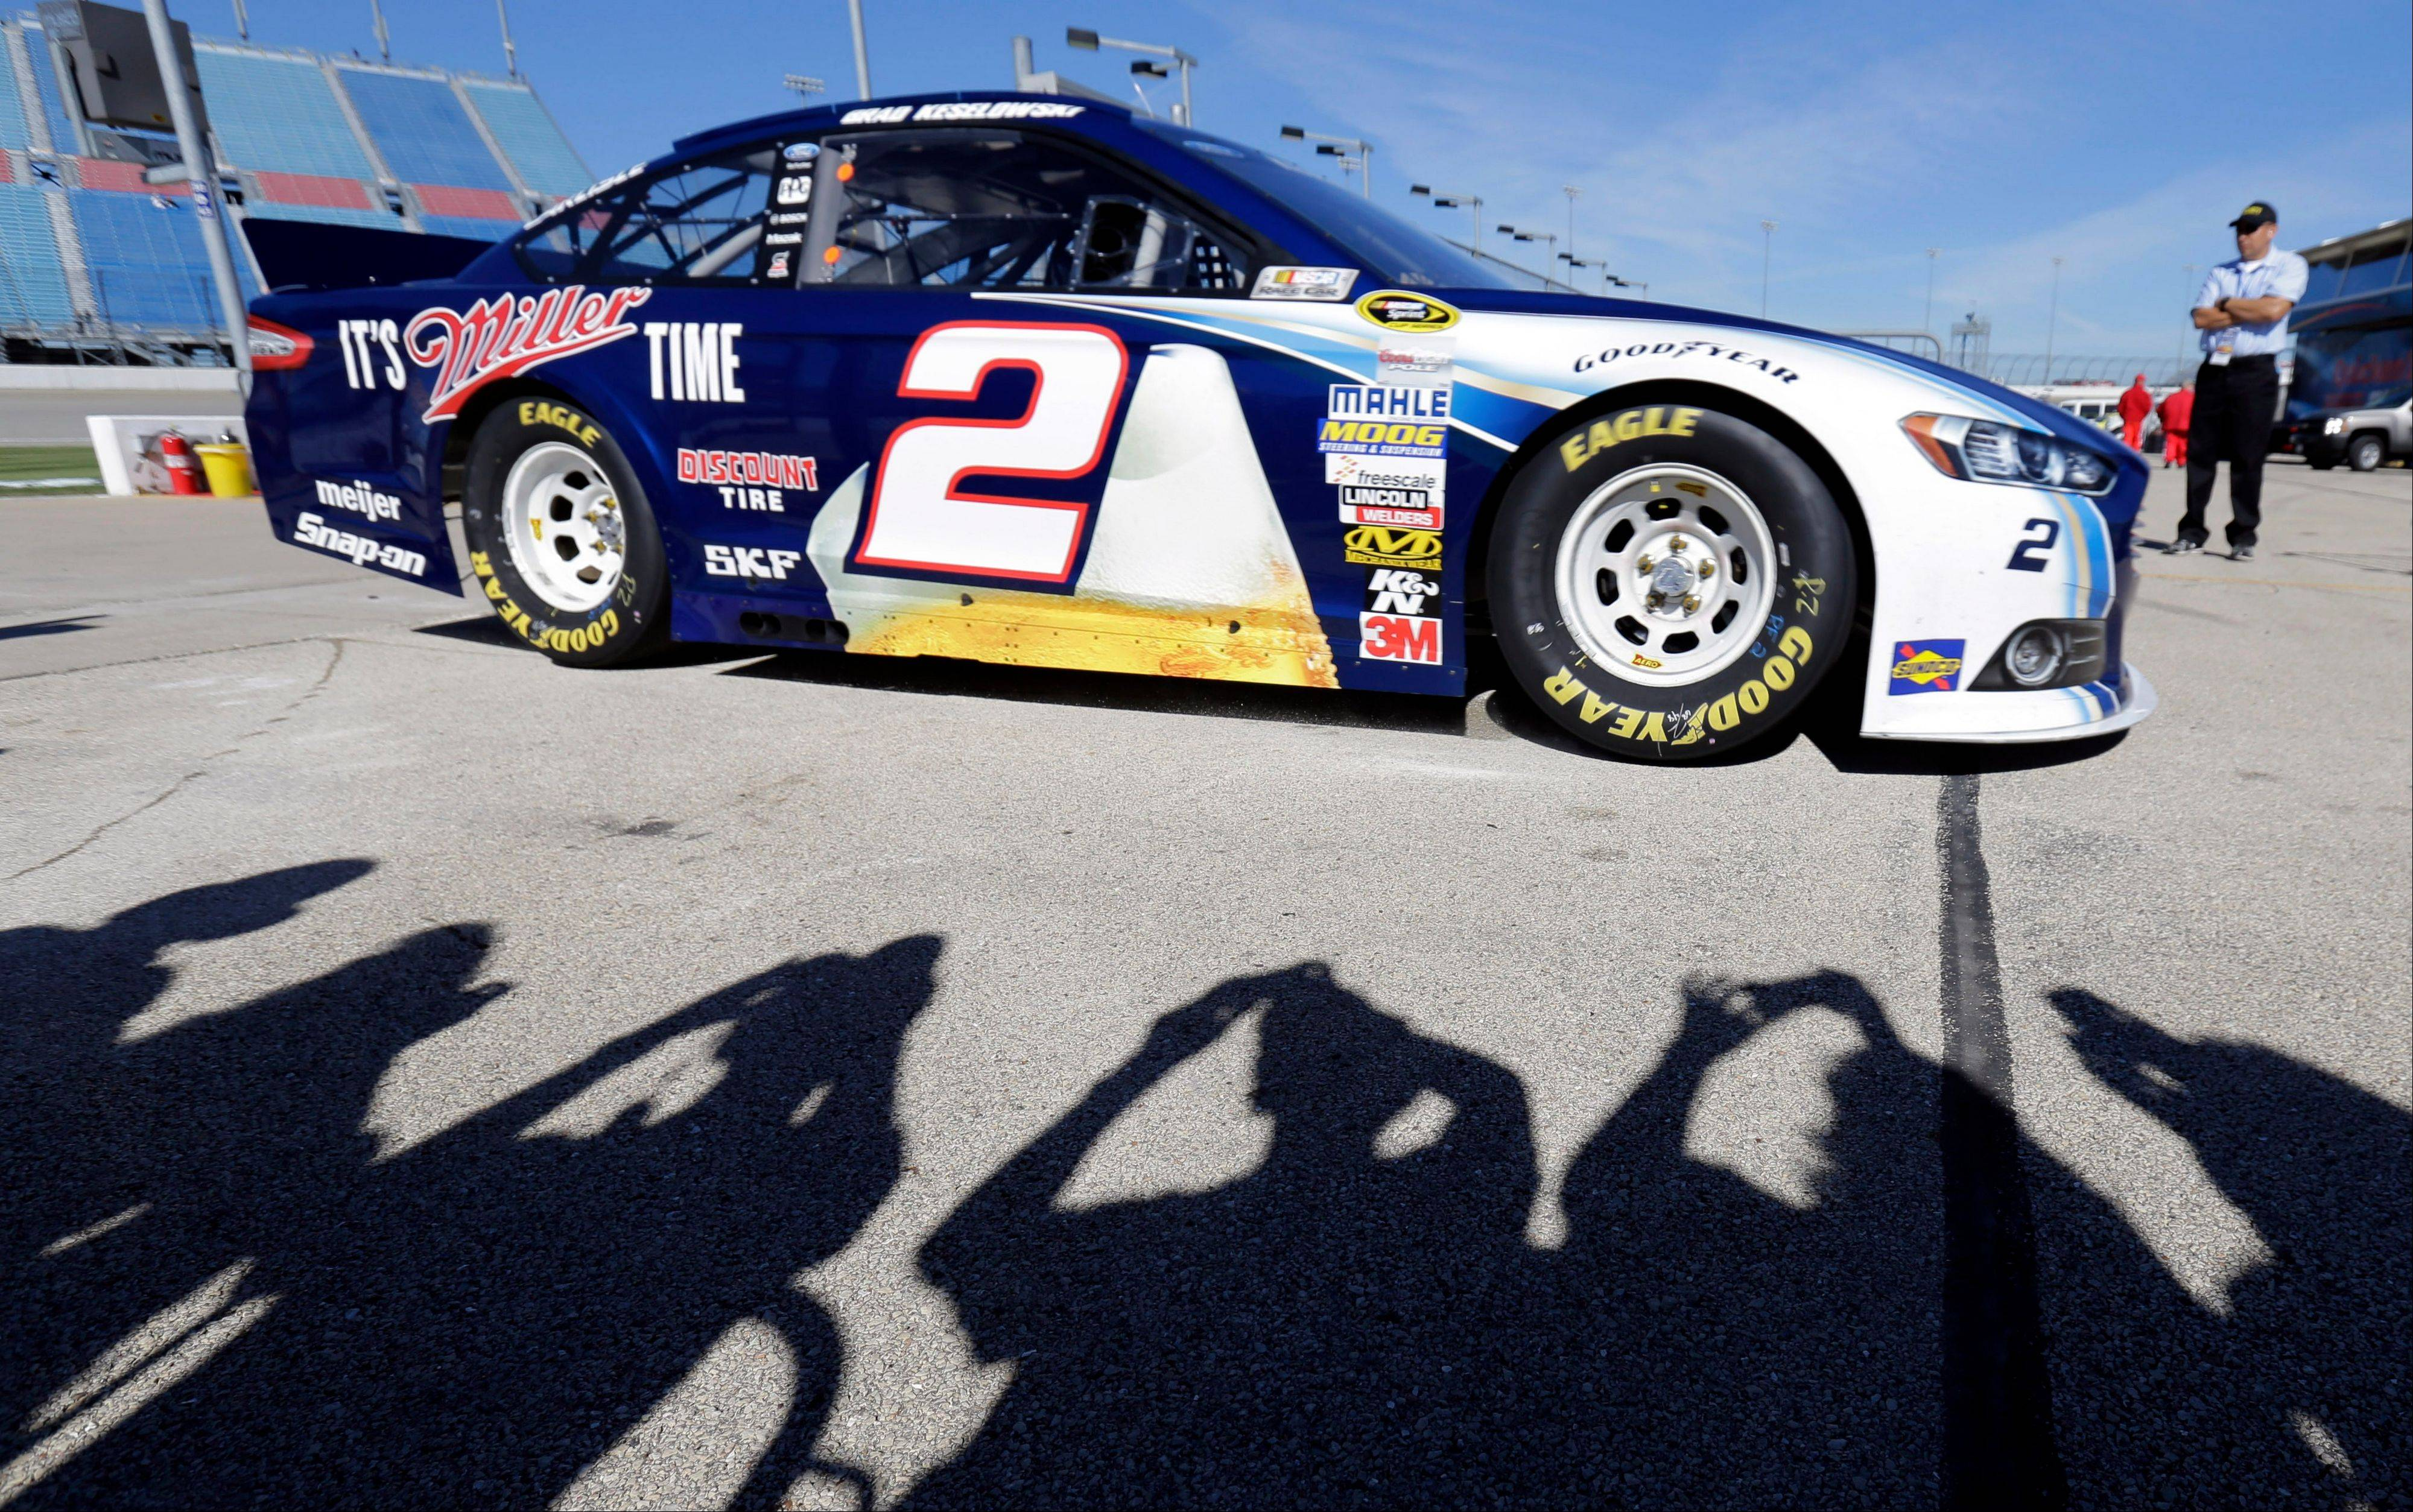 NASCAR fans take photos of Brad Keselowski's car while Brad Keselowski drives his car during practice for the NASCAR Sprint Cup Series auto race at Chicagoland Speedway in Joliet, Ill., Saturday, Sept. 14, 2013.